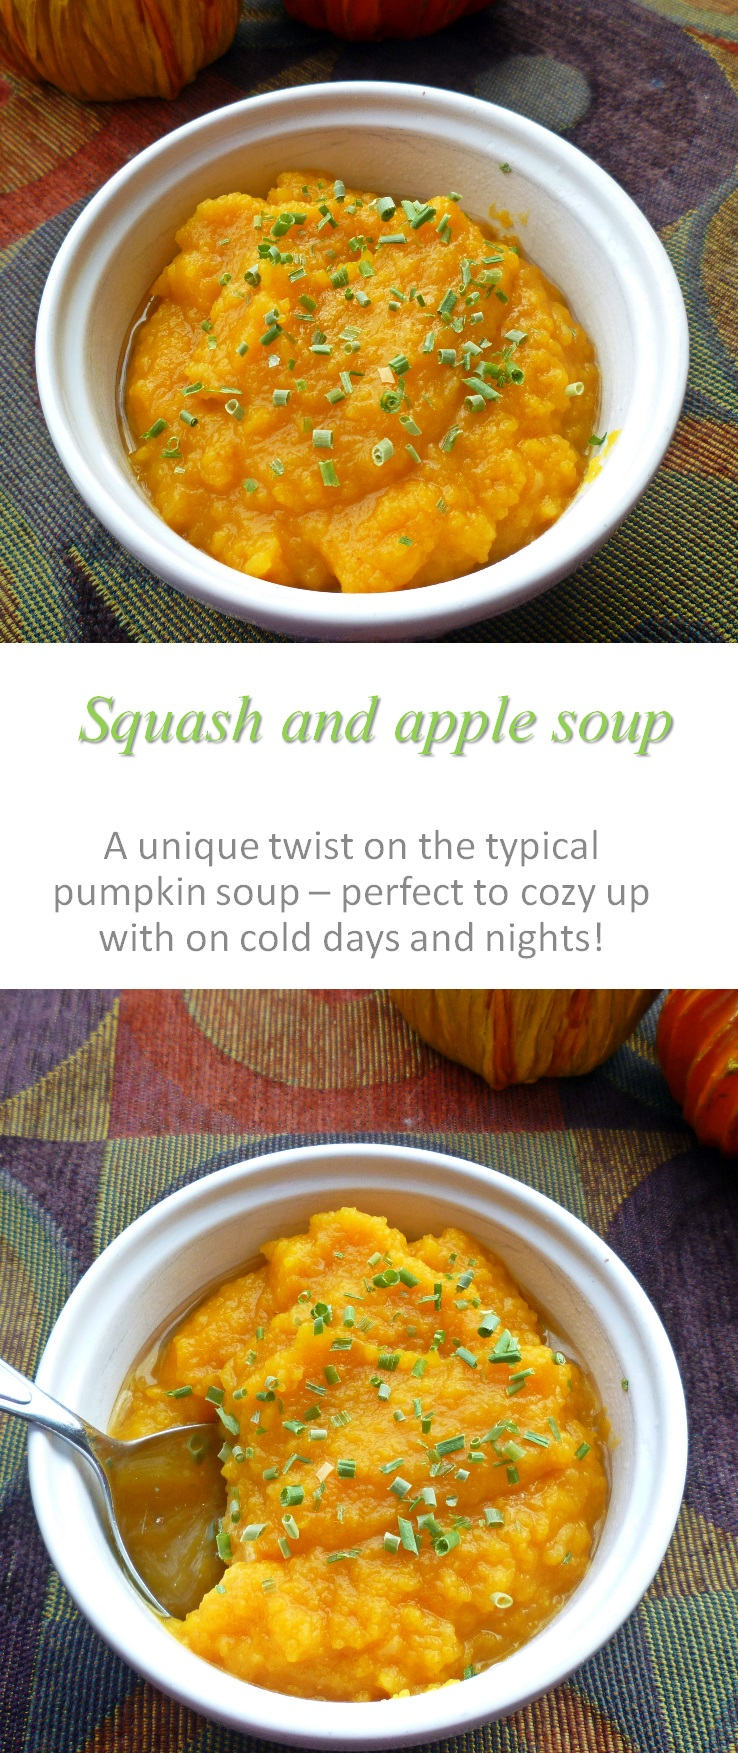 Take advantage of all the winter squash and make this squash apple soup for a hearty, cozy meal, warming you up from the inside out! #squash